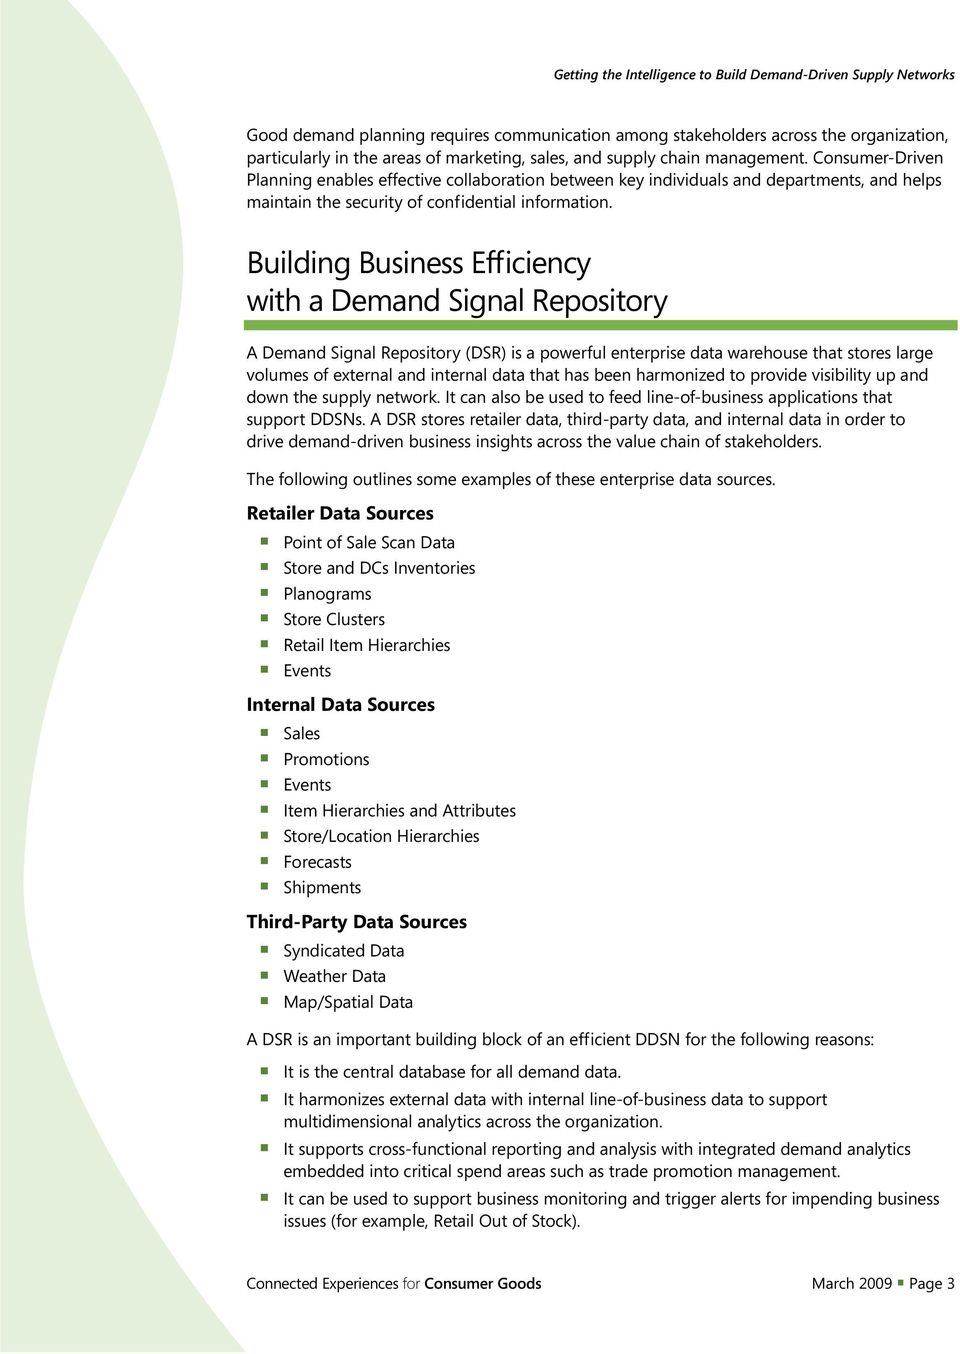 Building Business Efficiency with a Demand Signal Repository A Demand Signal Repository (DSR) is a powerful enterprise data warehouse that stores large volumes of external and internal data that has